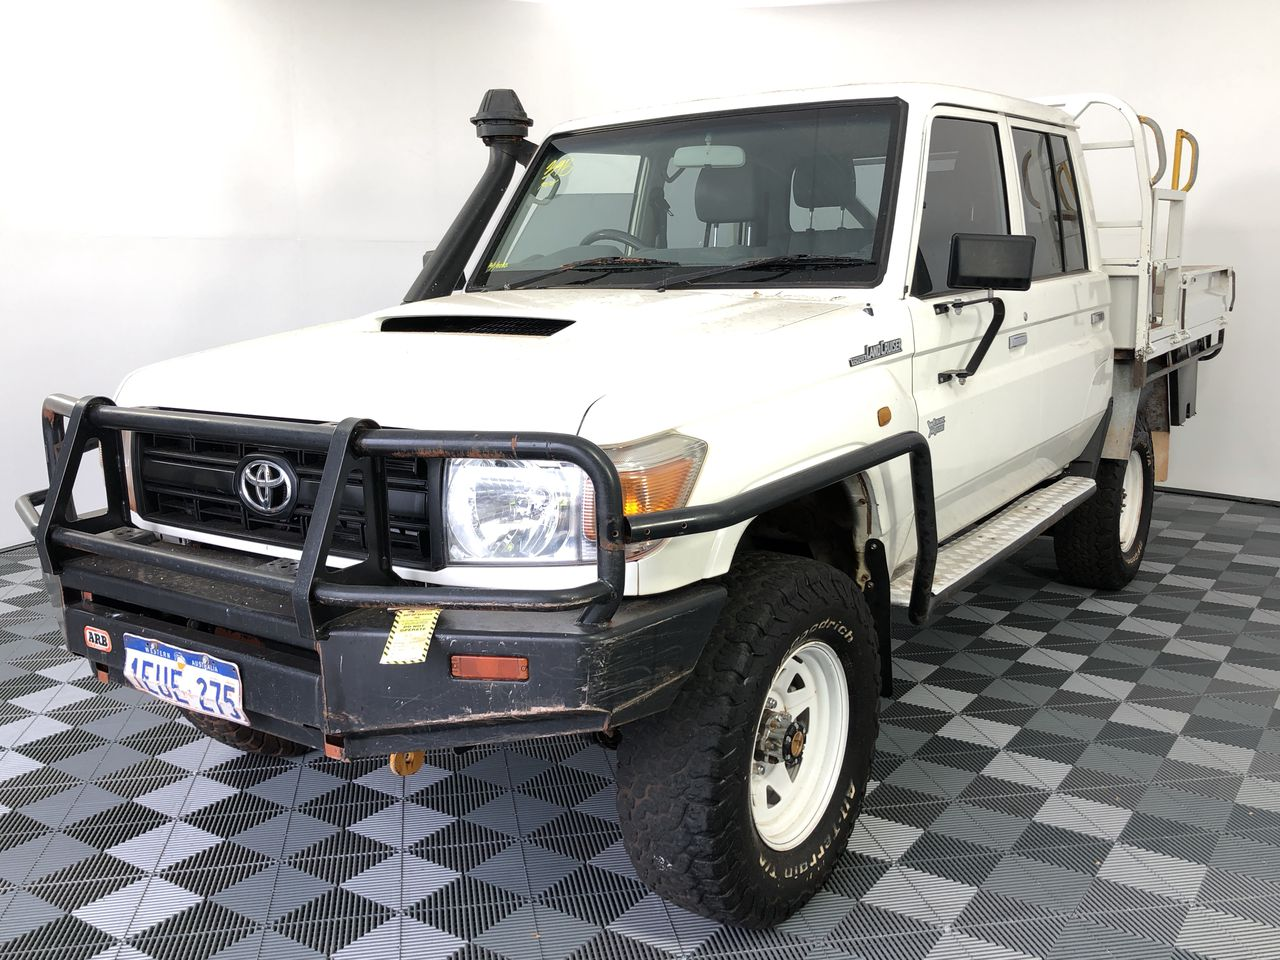 2015 Toyota Landcruiser Workmate (4x4) VDJ79R T/Dsl Manual Crew Cab Chassis